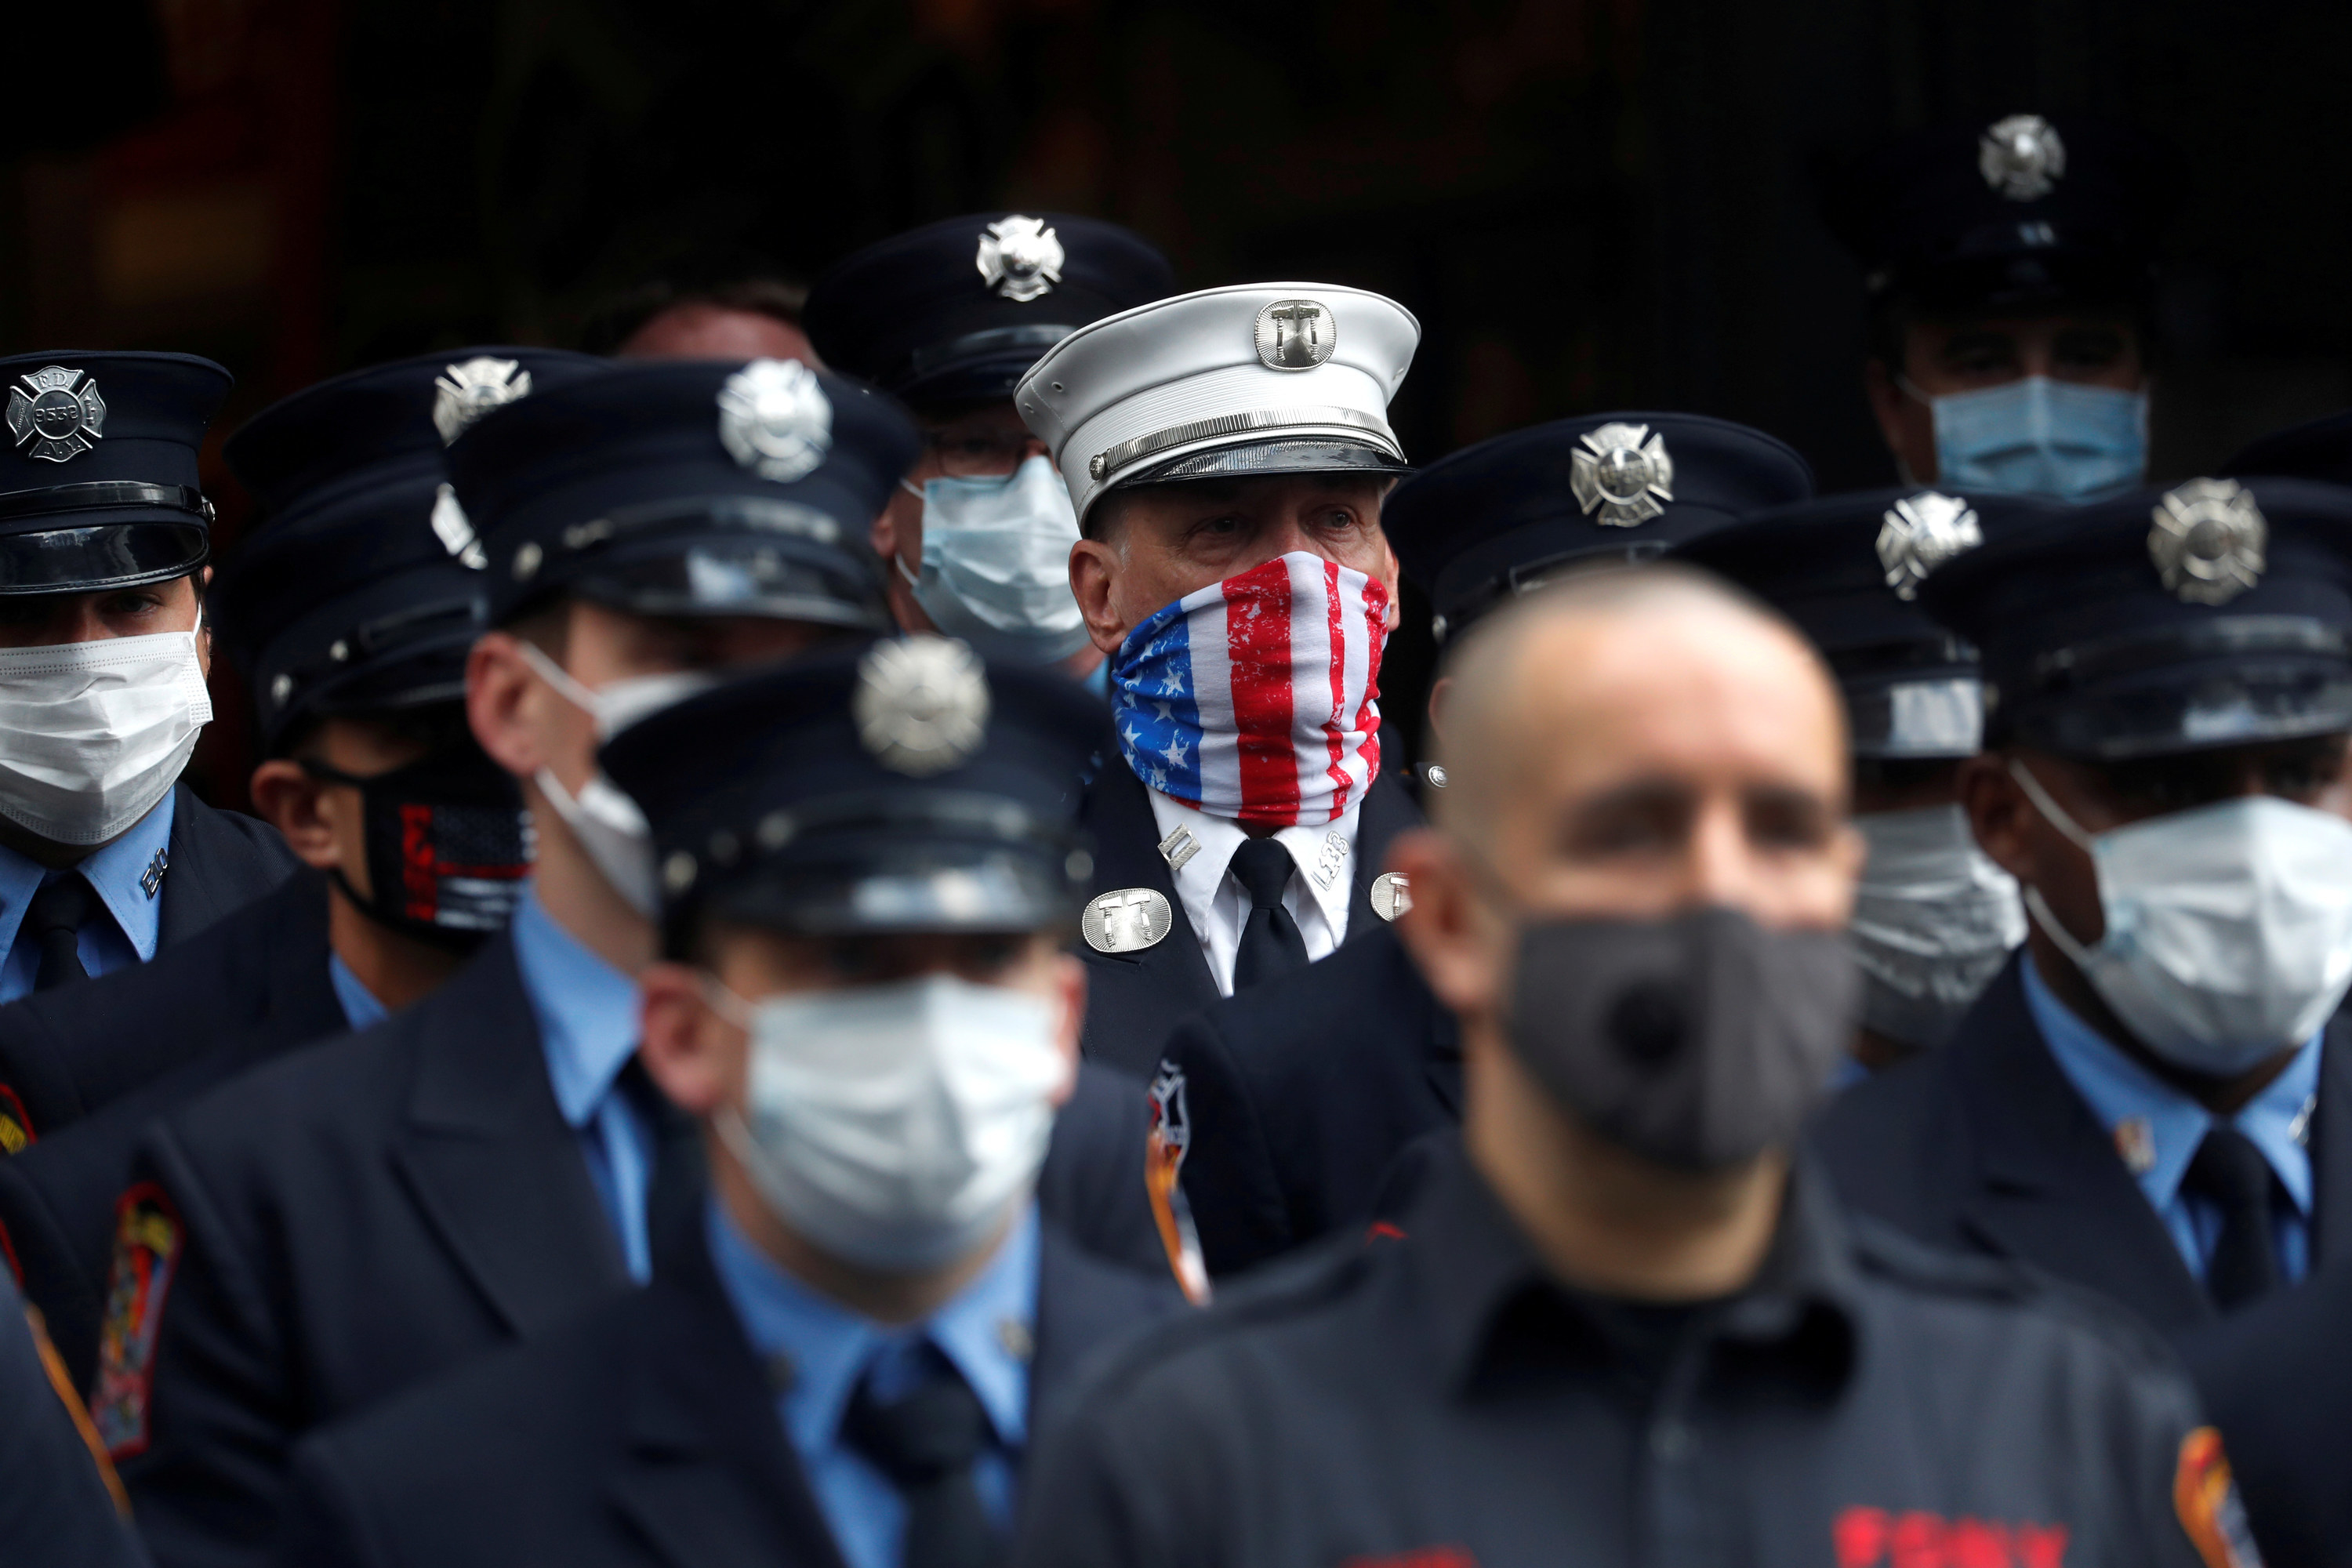 Several uniformed firefighters stand in a row wearing white or gray face masks; in the background one man wears a face mask with a US flag print